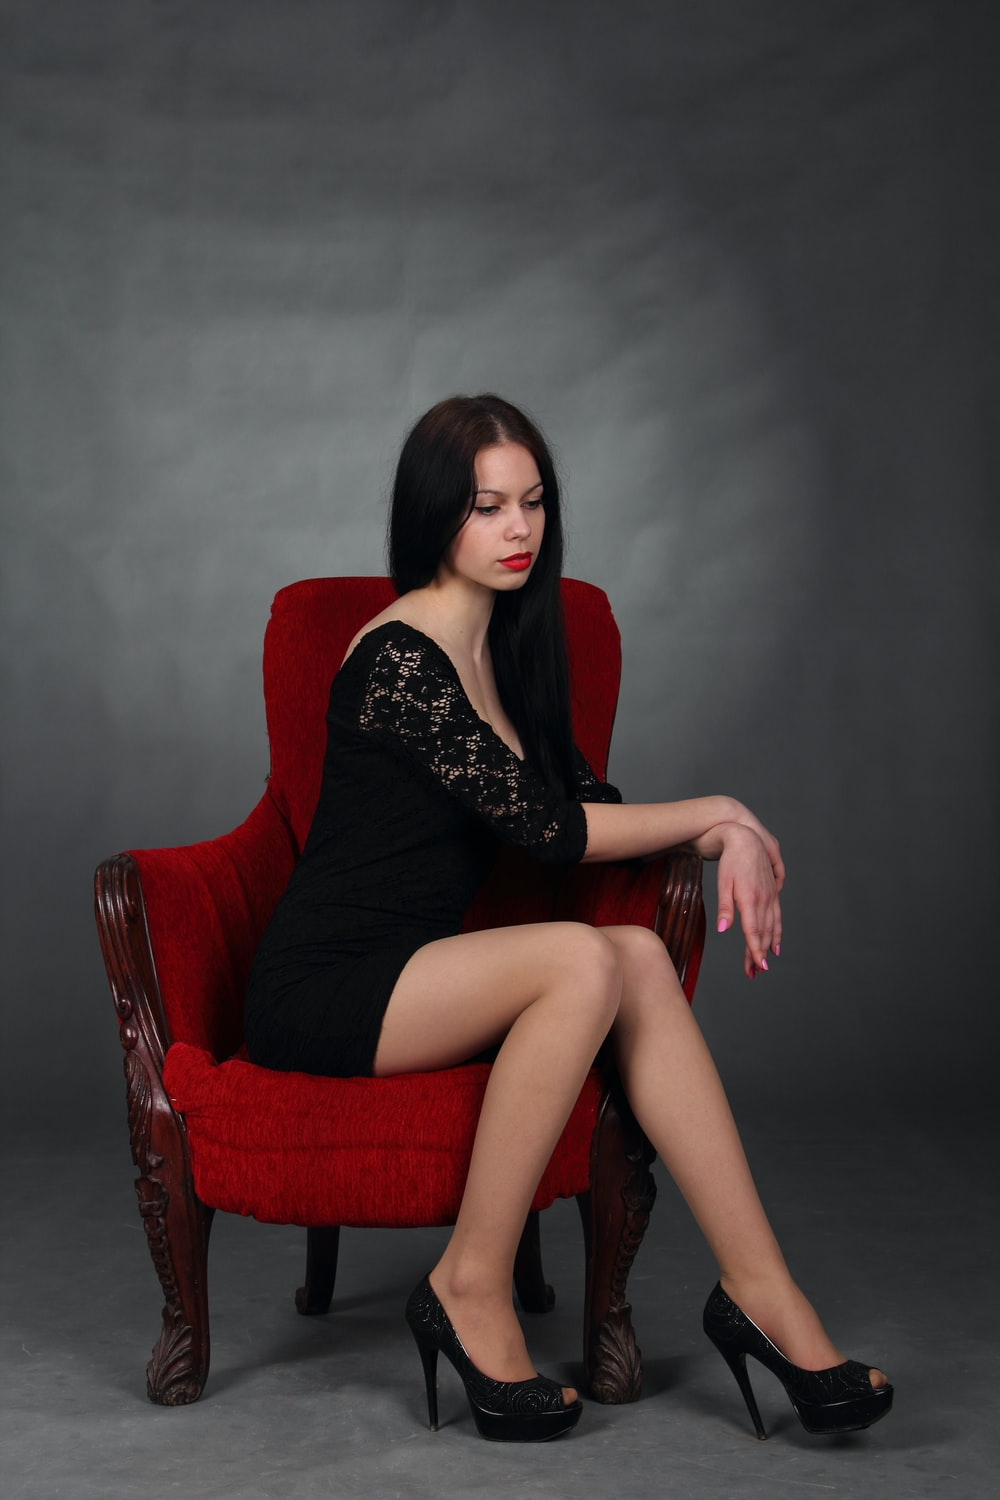 woman in black dress sitting on red armchair